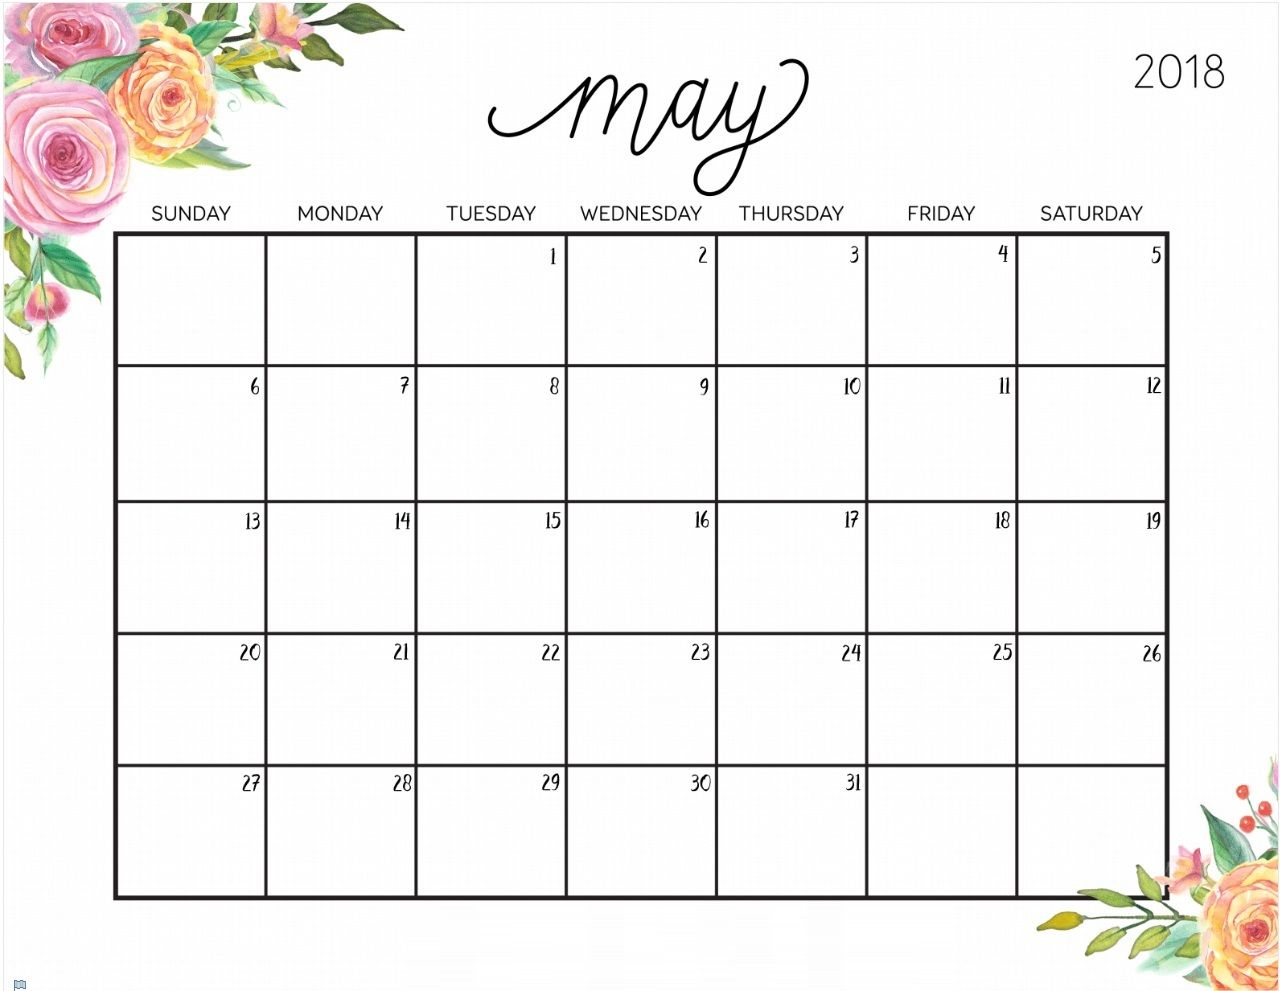 May-2018-Floral-Calendar 1280×991픽셀 | Monthly